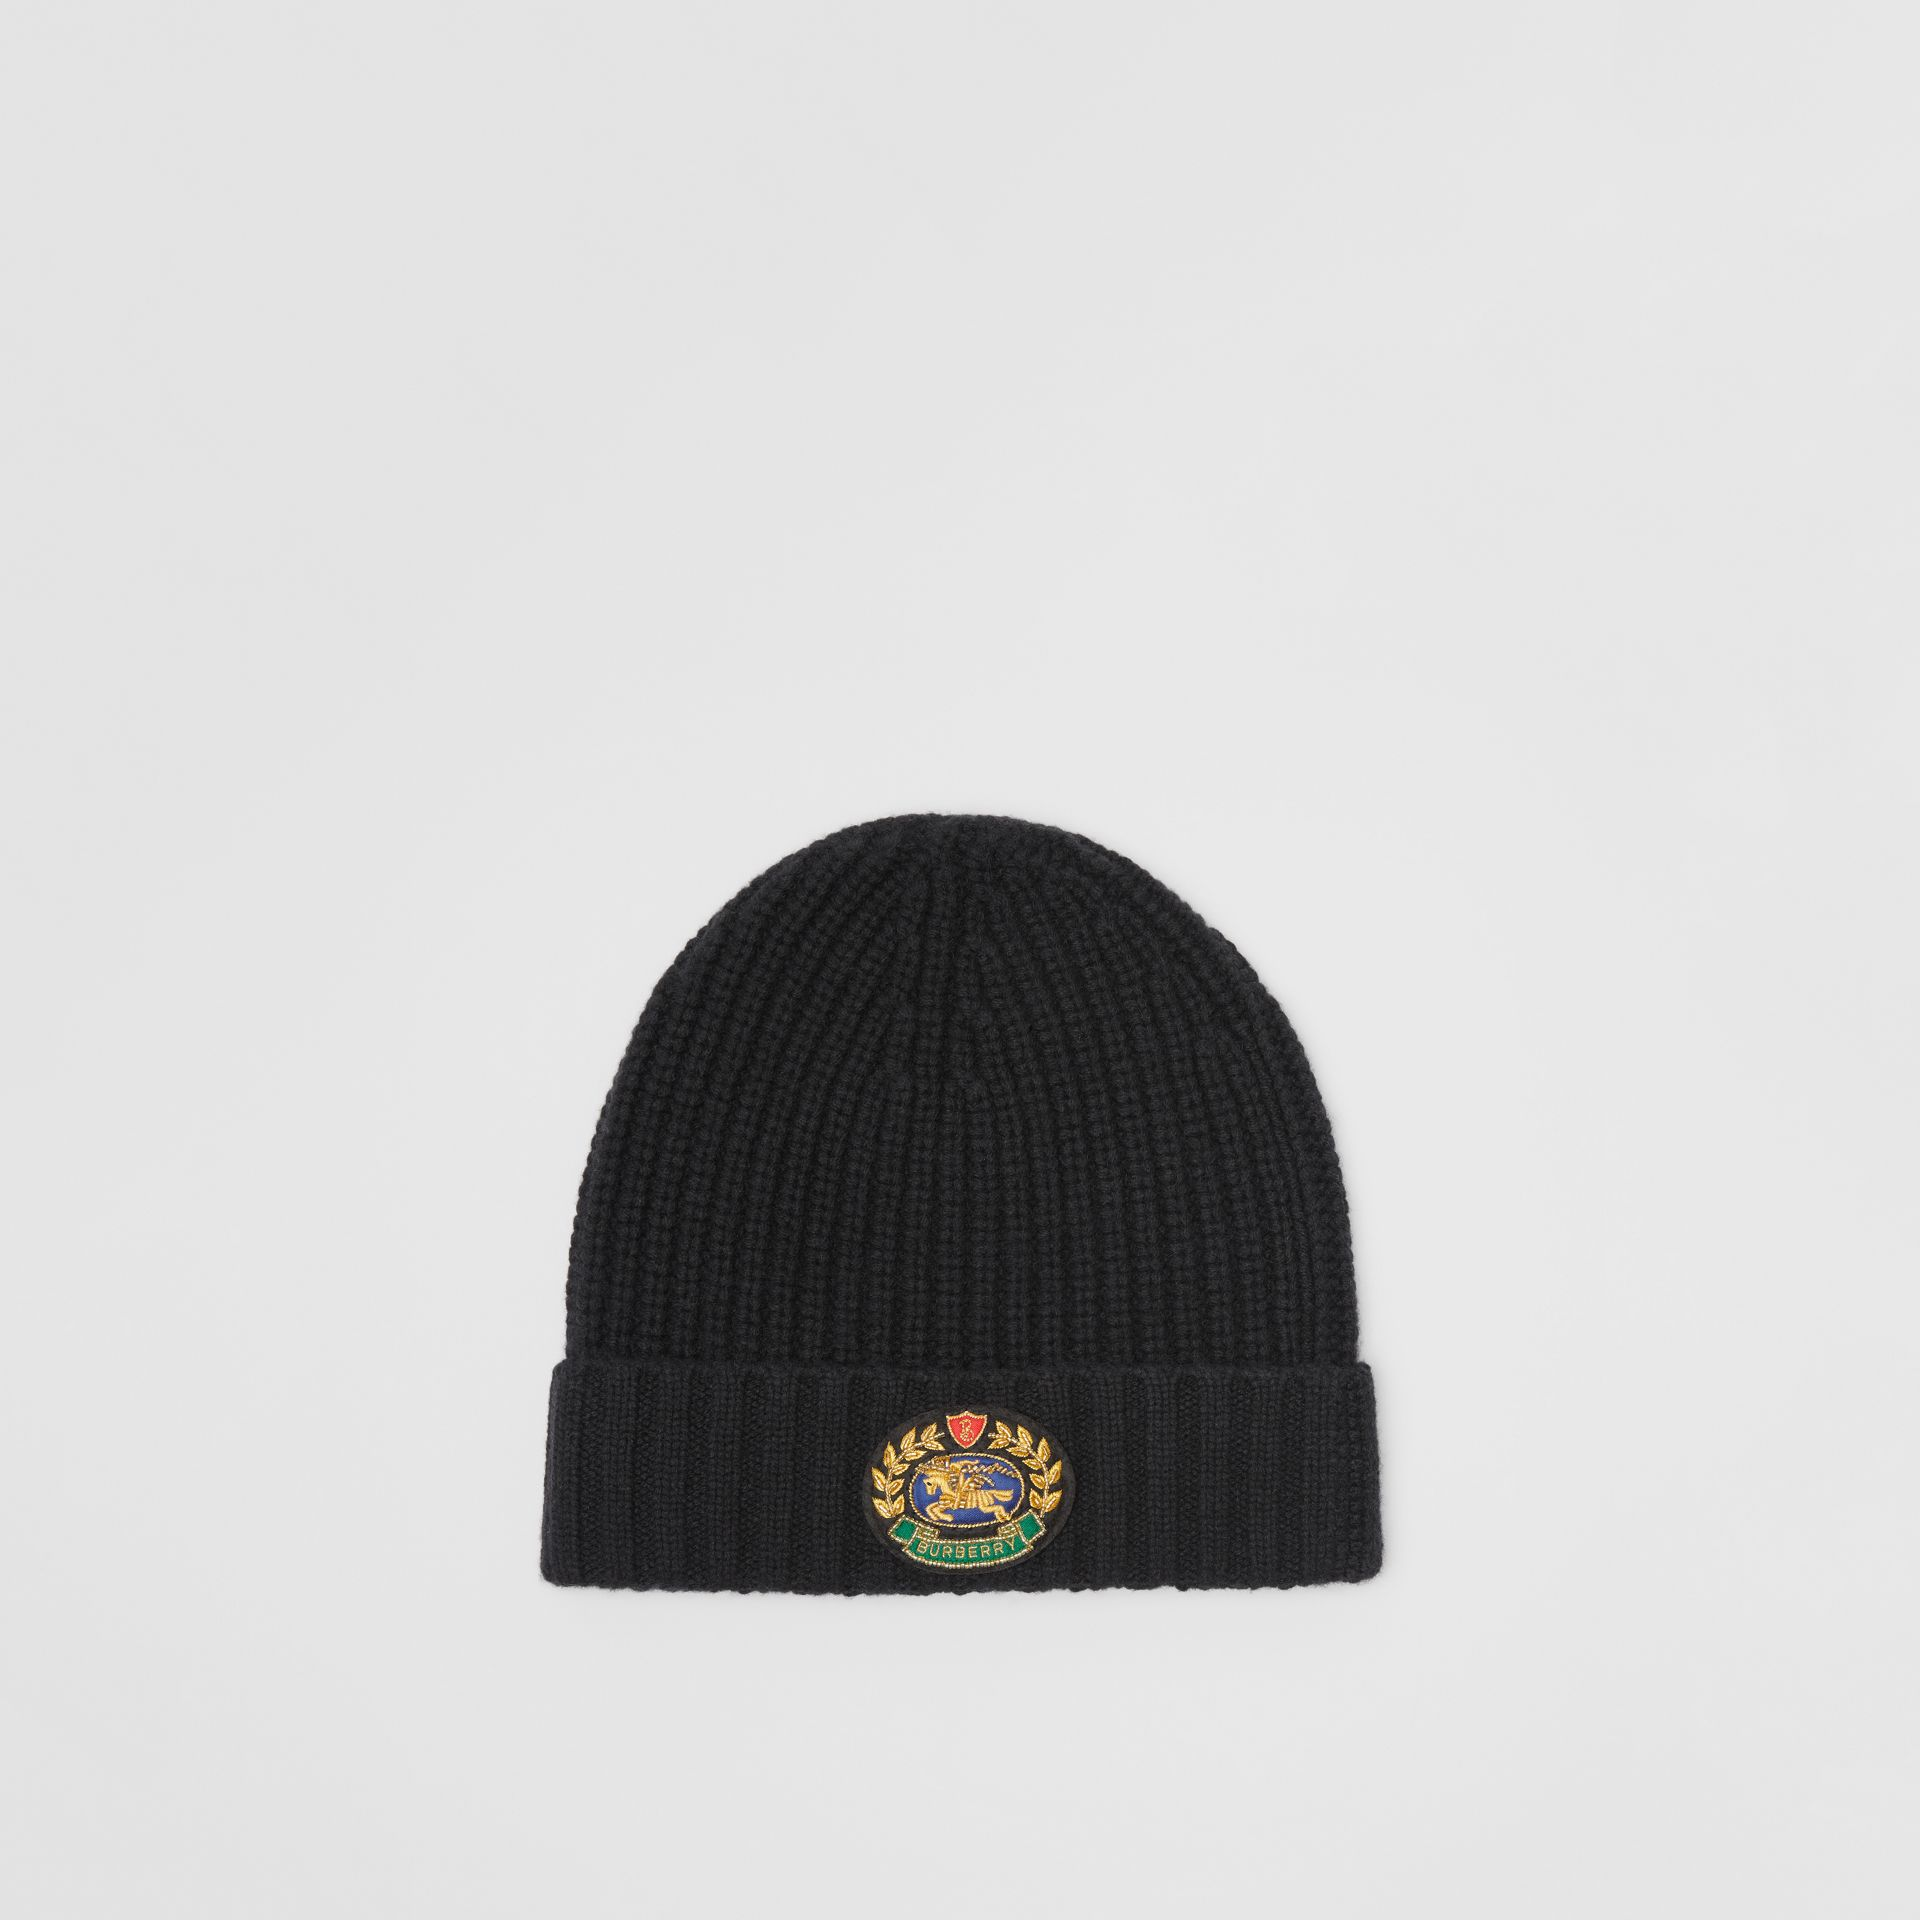 Embroidered Crest Rib Knit Wool Cashmere Beanie in Black | Burberry - gallery image 0